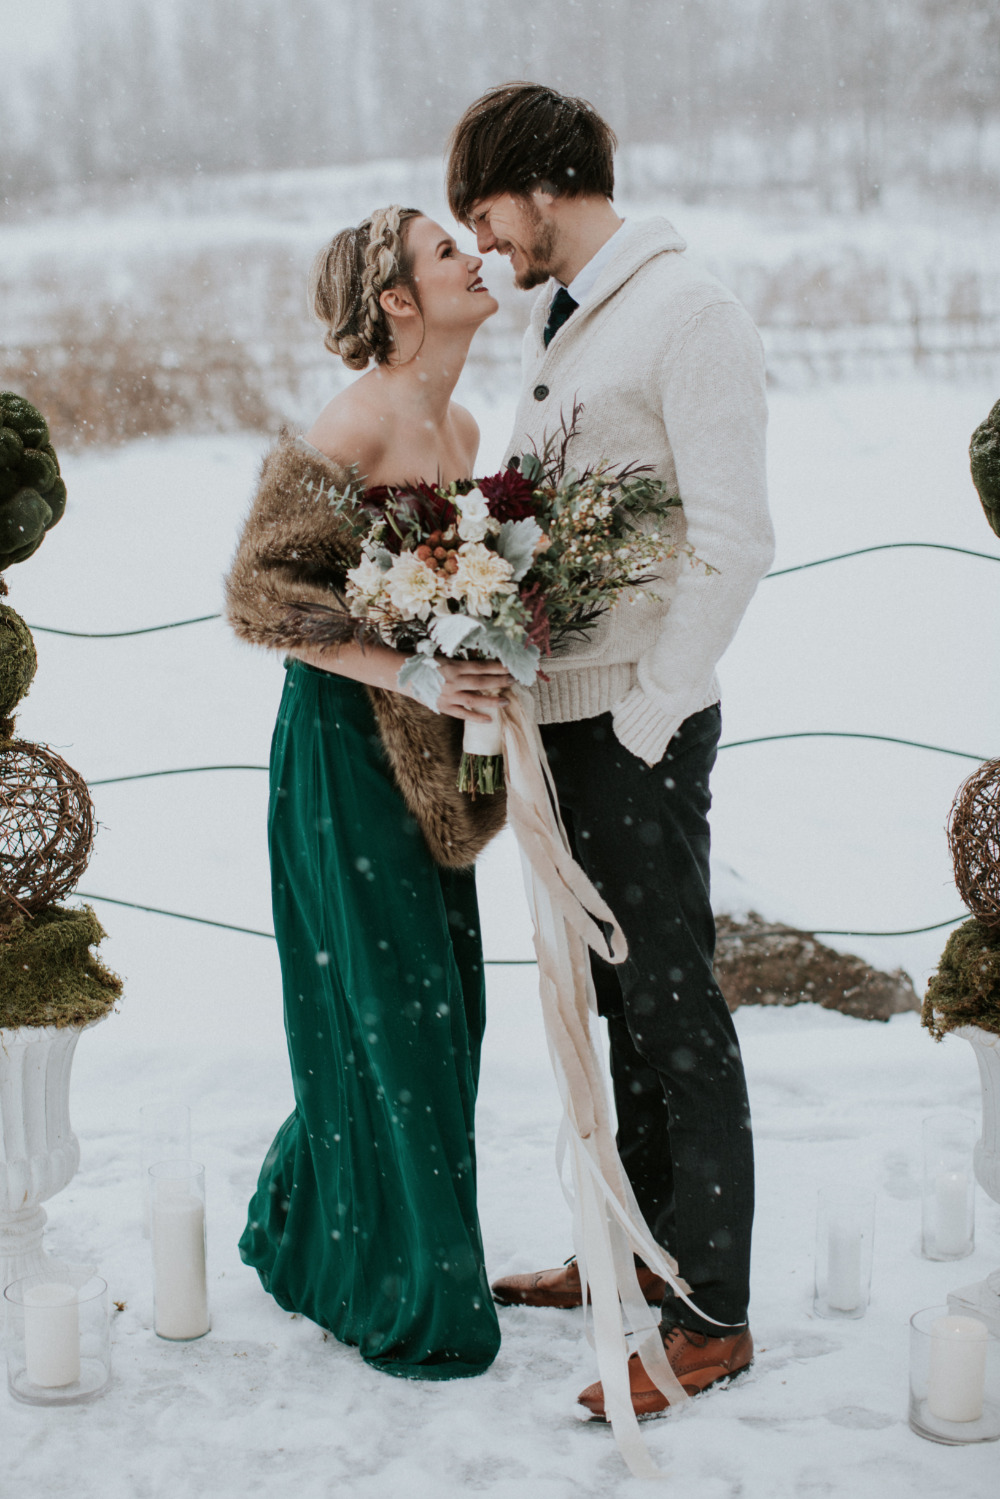 casual outfits   an emerald strapless wedding dress plus a faux fur stole and black pants with a creamy shirt and sweater over it